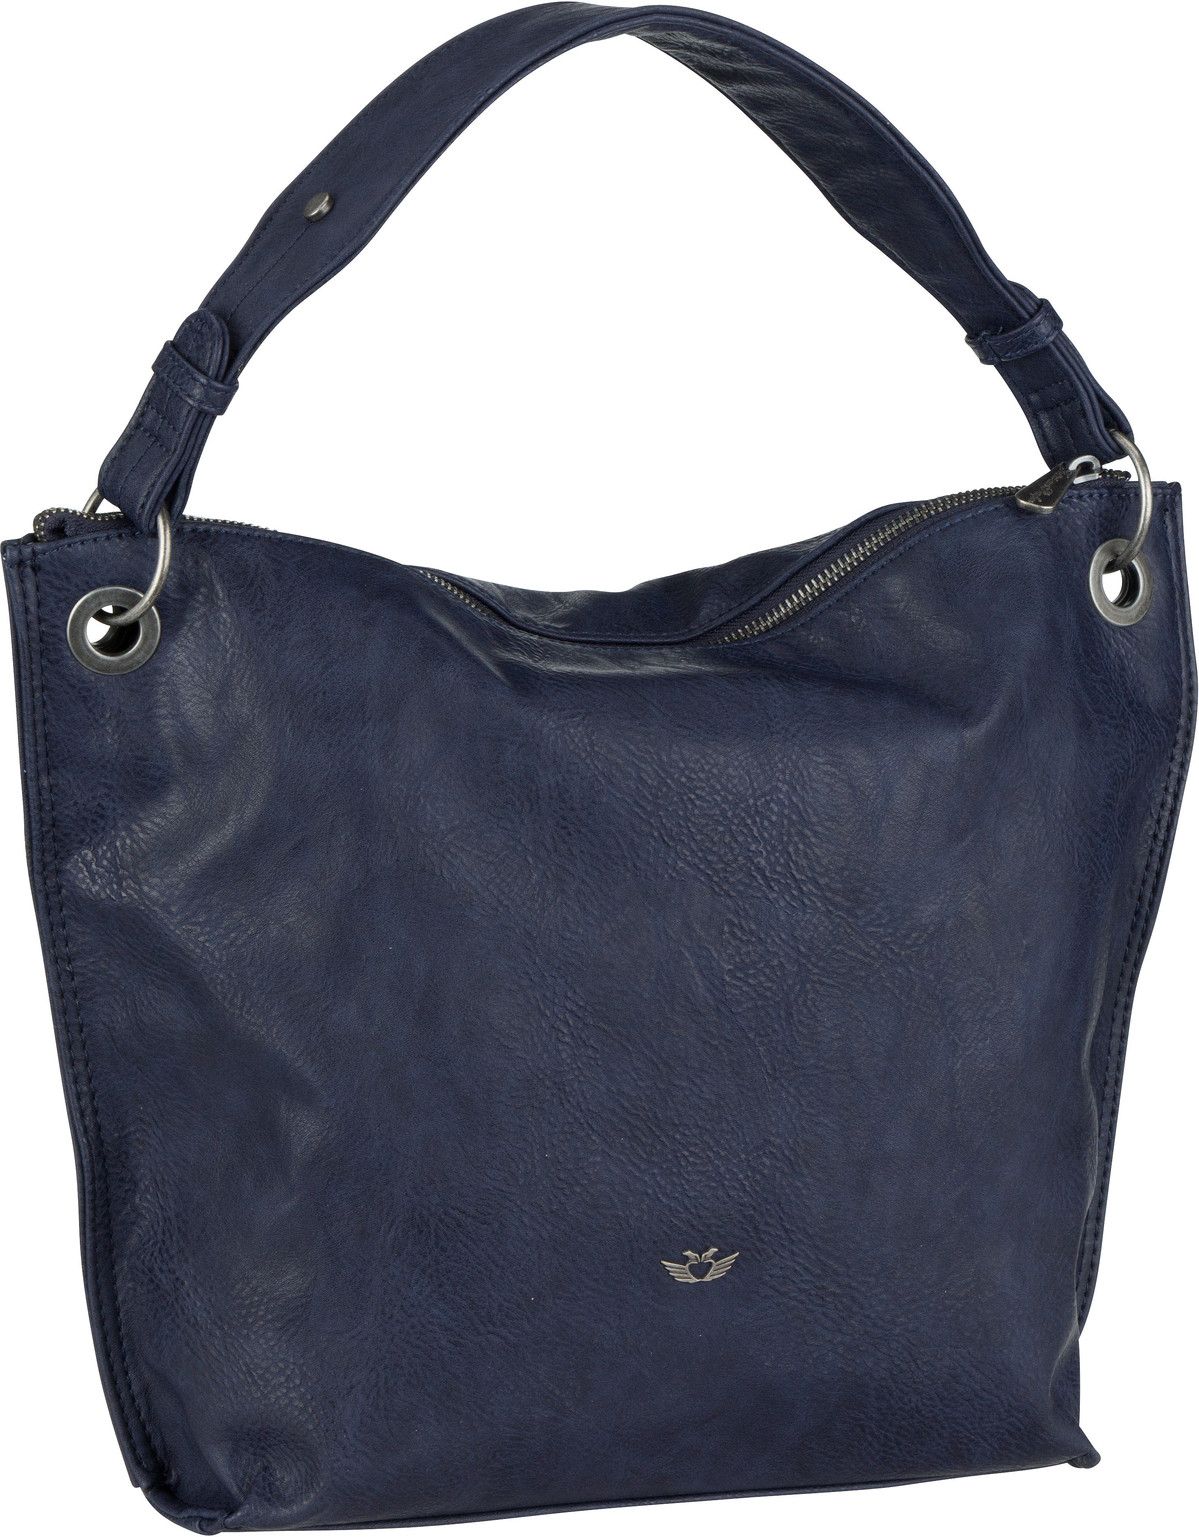 Handtasche Biana Saddle Navy